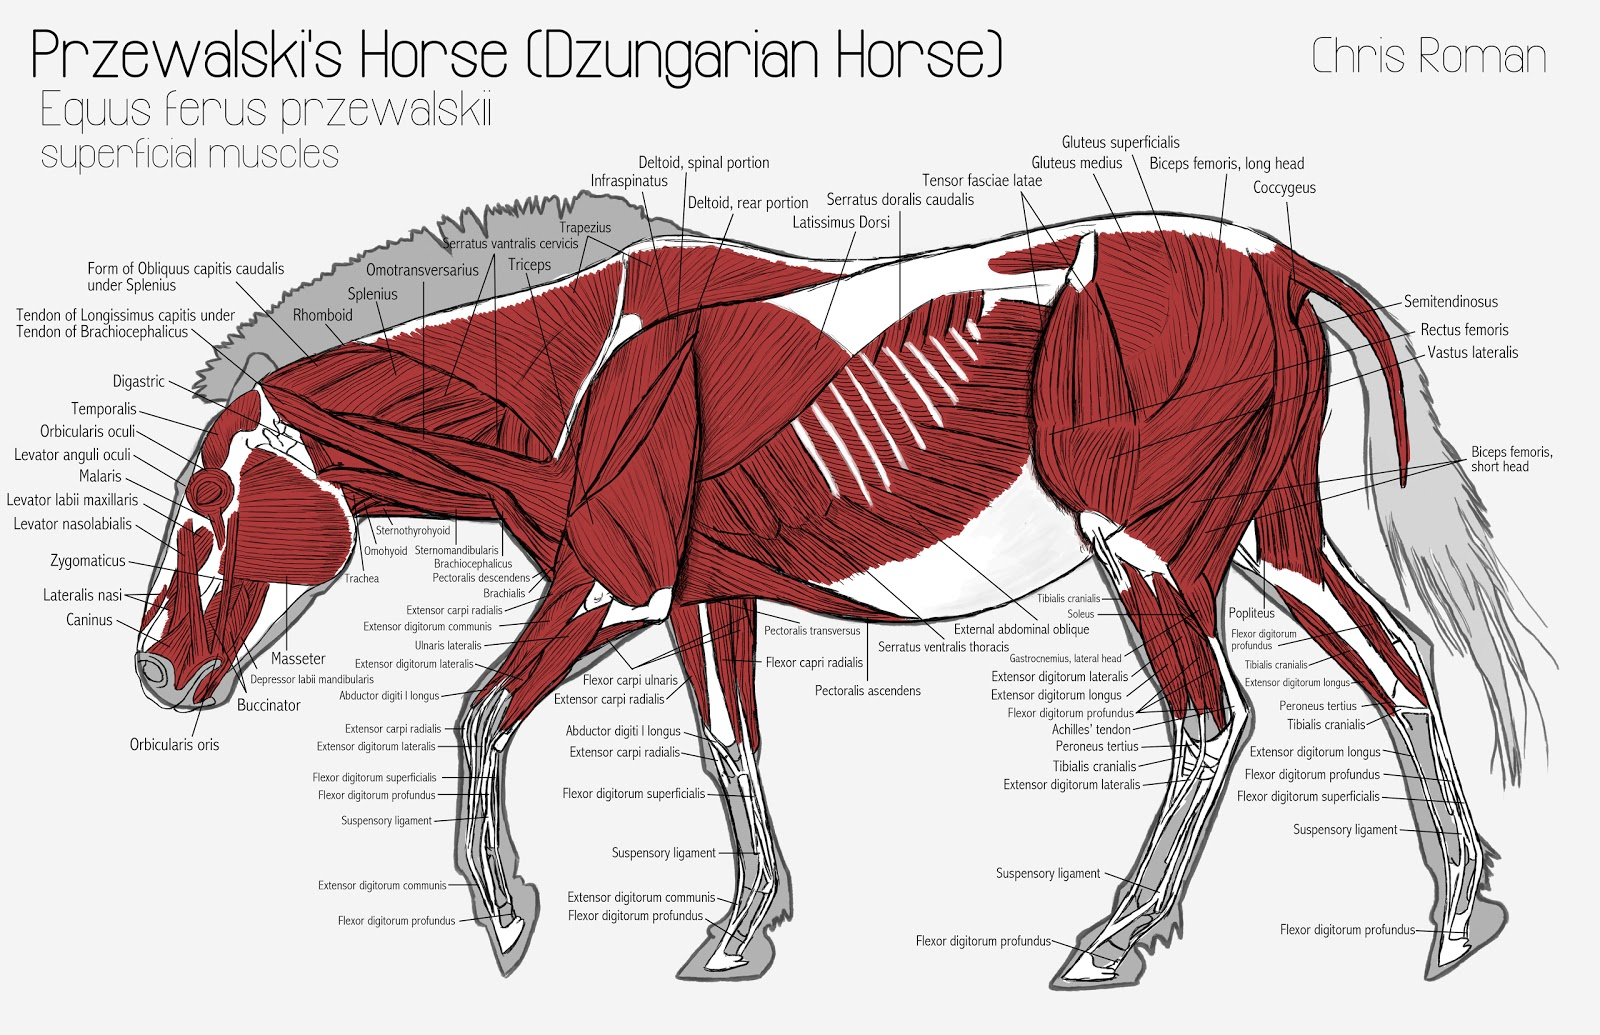 Chris Roman: Horse Anatomy Study